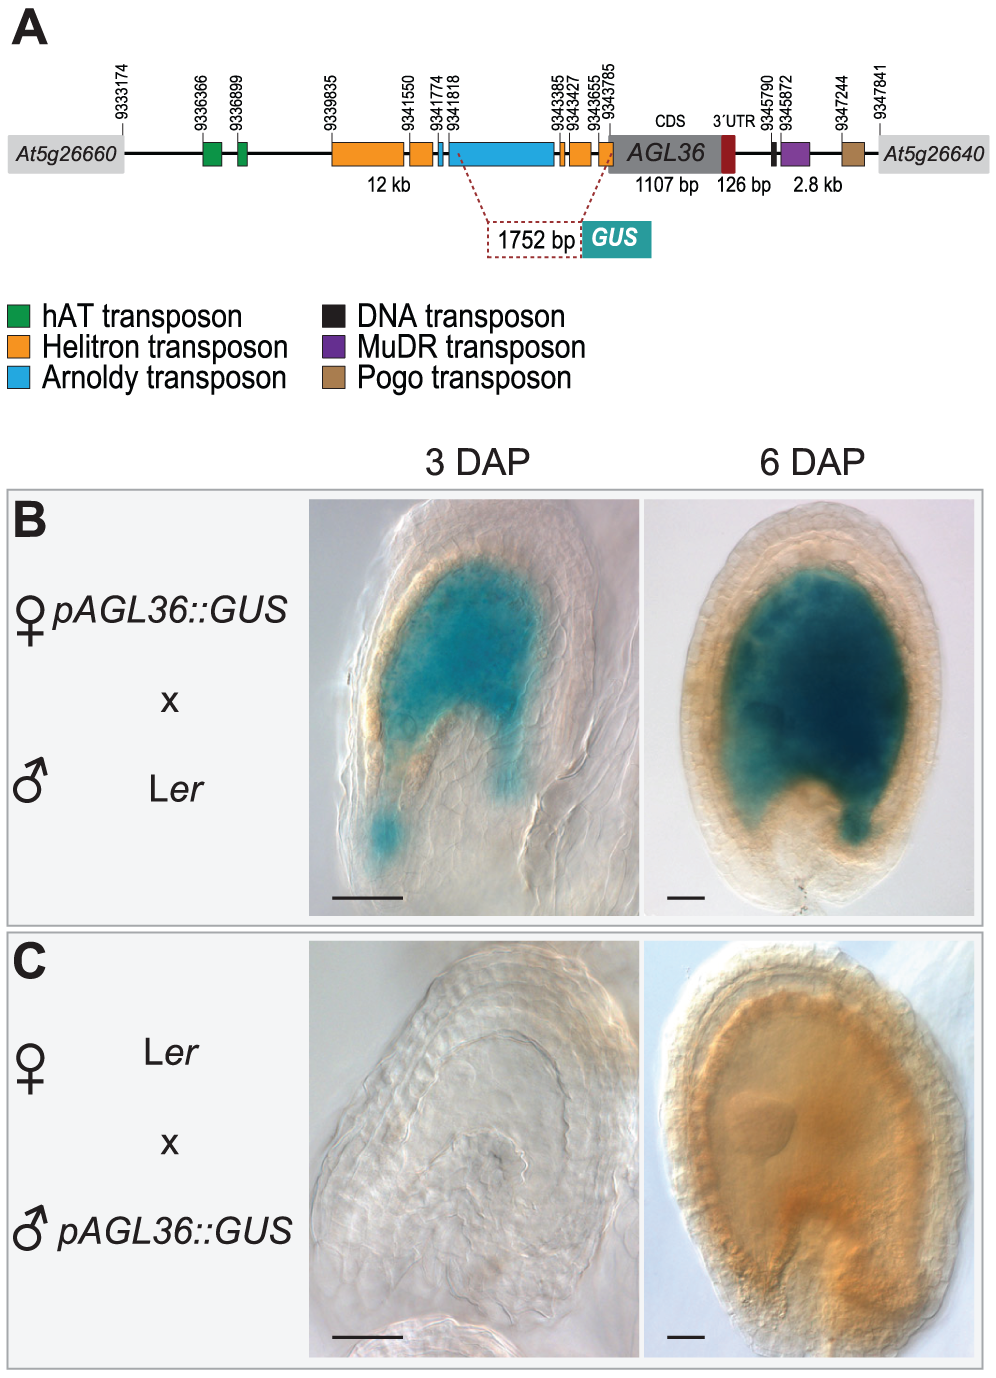 <i>pAGL36::GUS</i> is expressed only from its maternal allele (and only in the fertilization products).